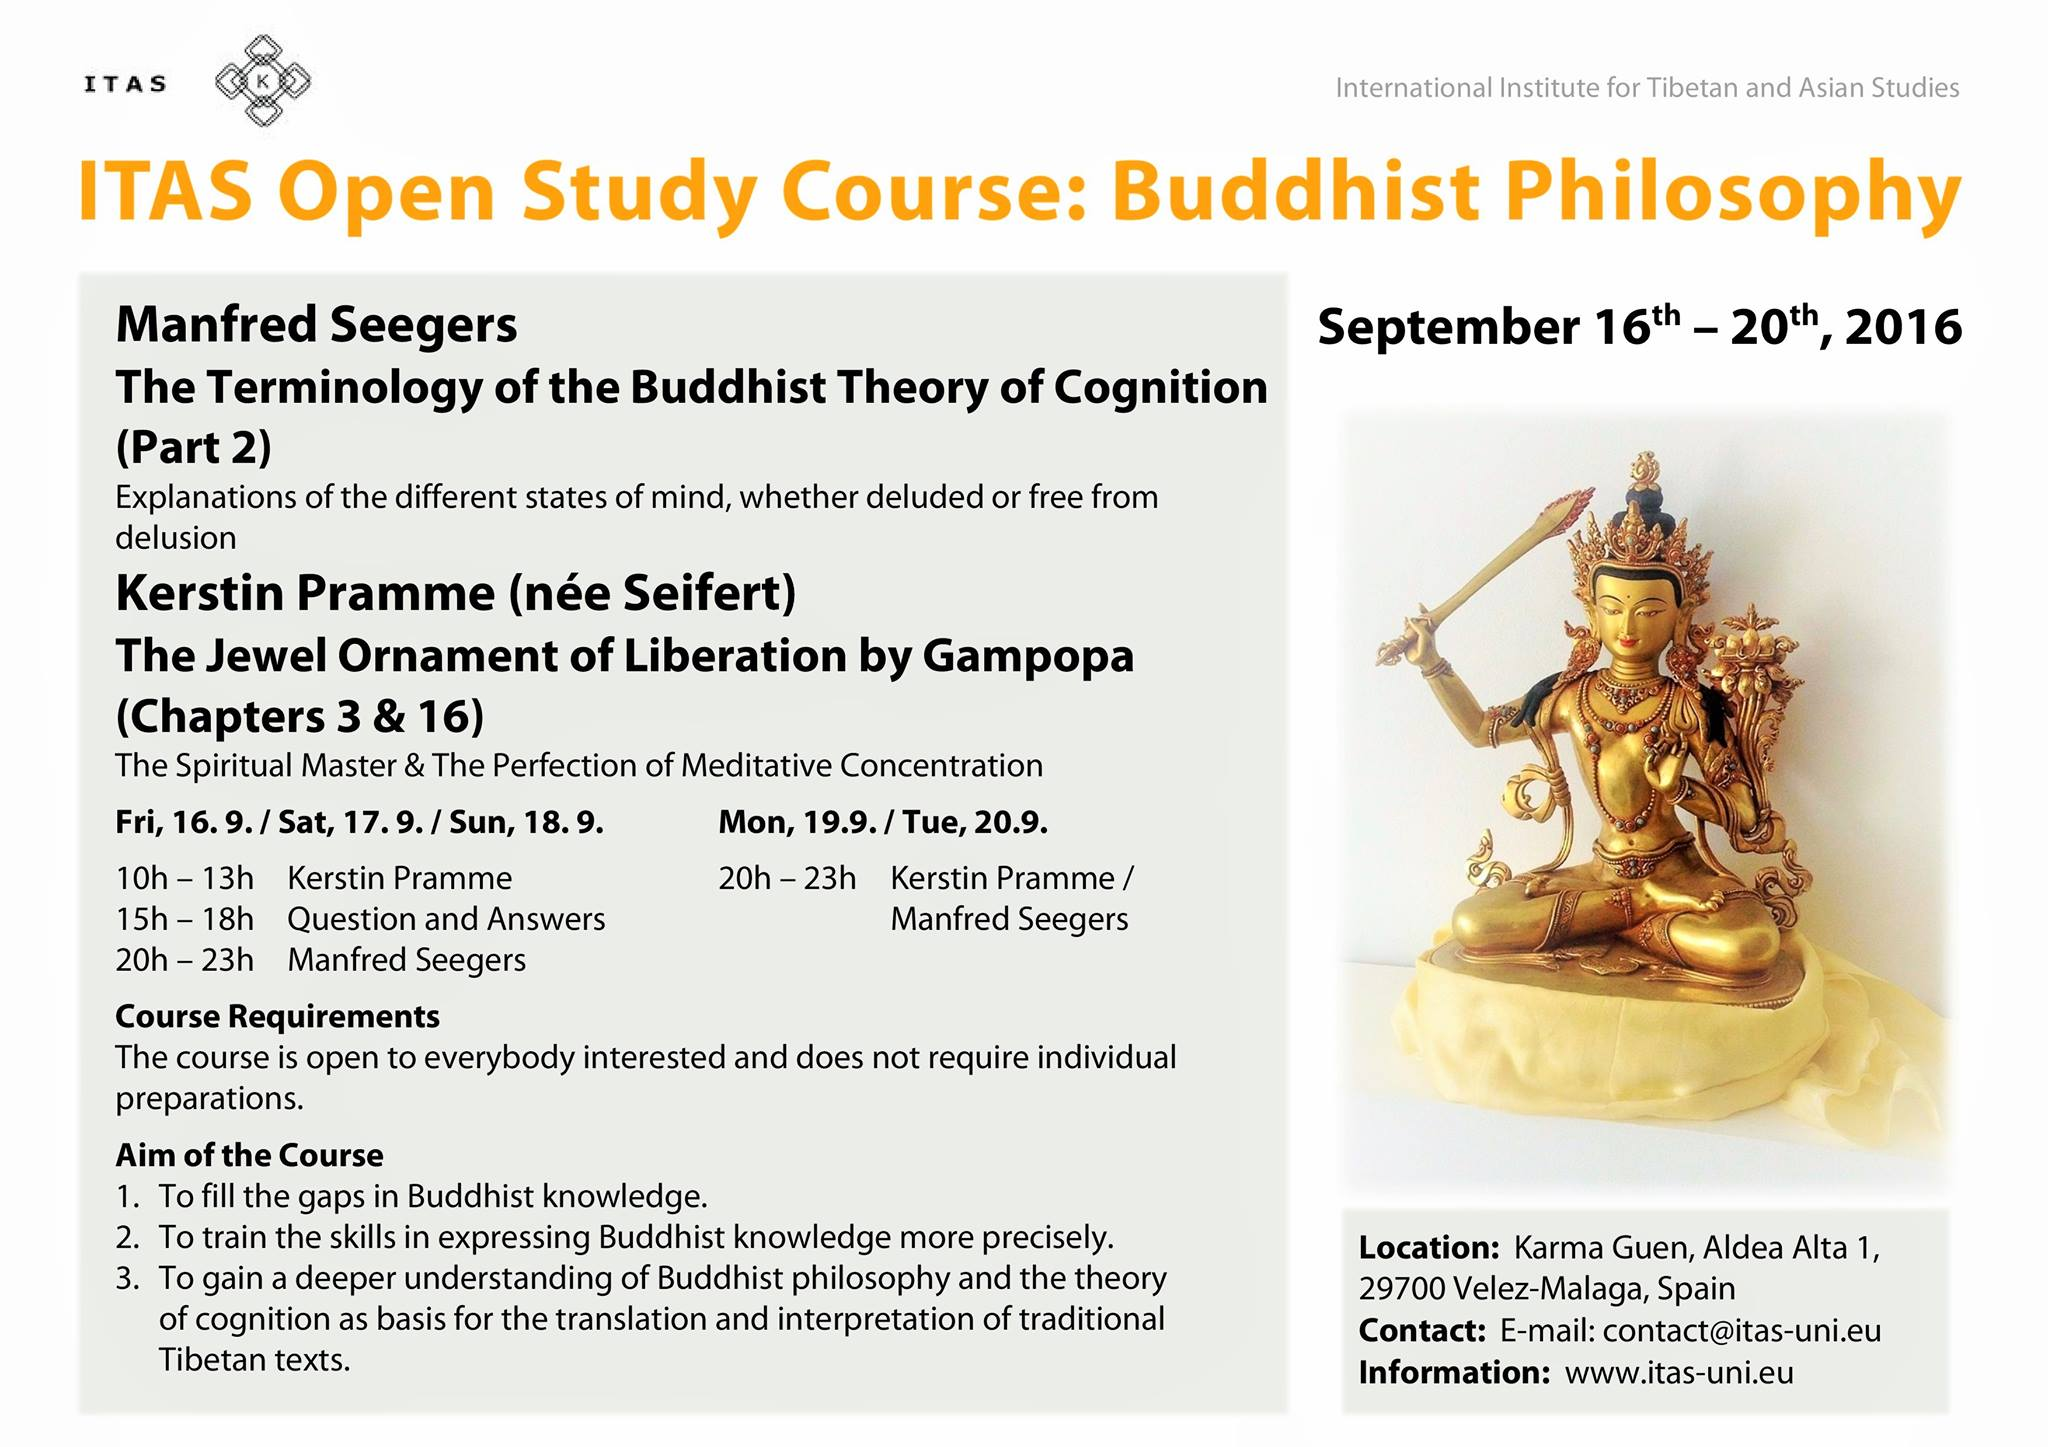 philosophy study Studyguide2wpd p 1 introduction to philosophy study guide for final exam metaphysics and epistemology: modern (& ancient) final 011: monday, april 30th from 1:00pm - 3:00pm in cb 243 the final exam will have two parts.